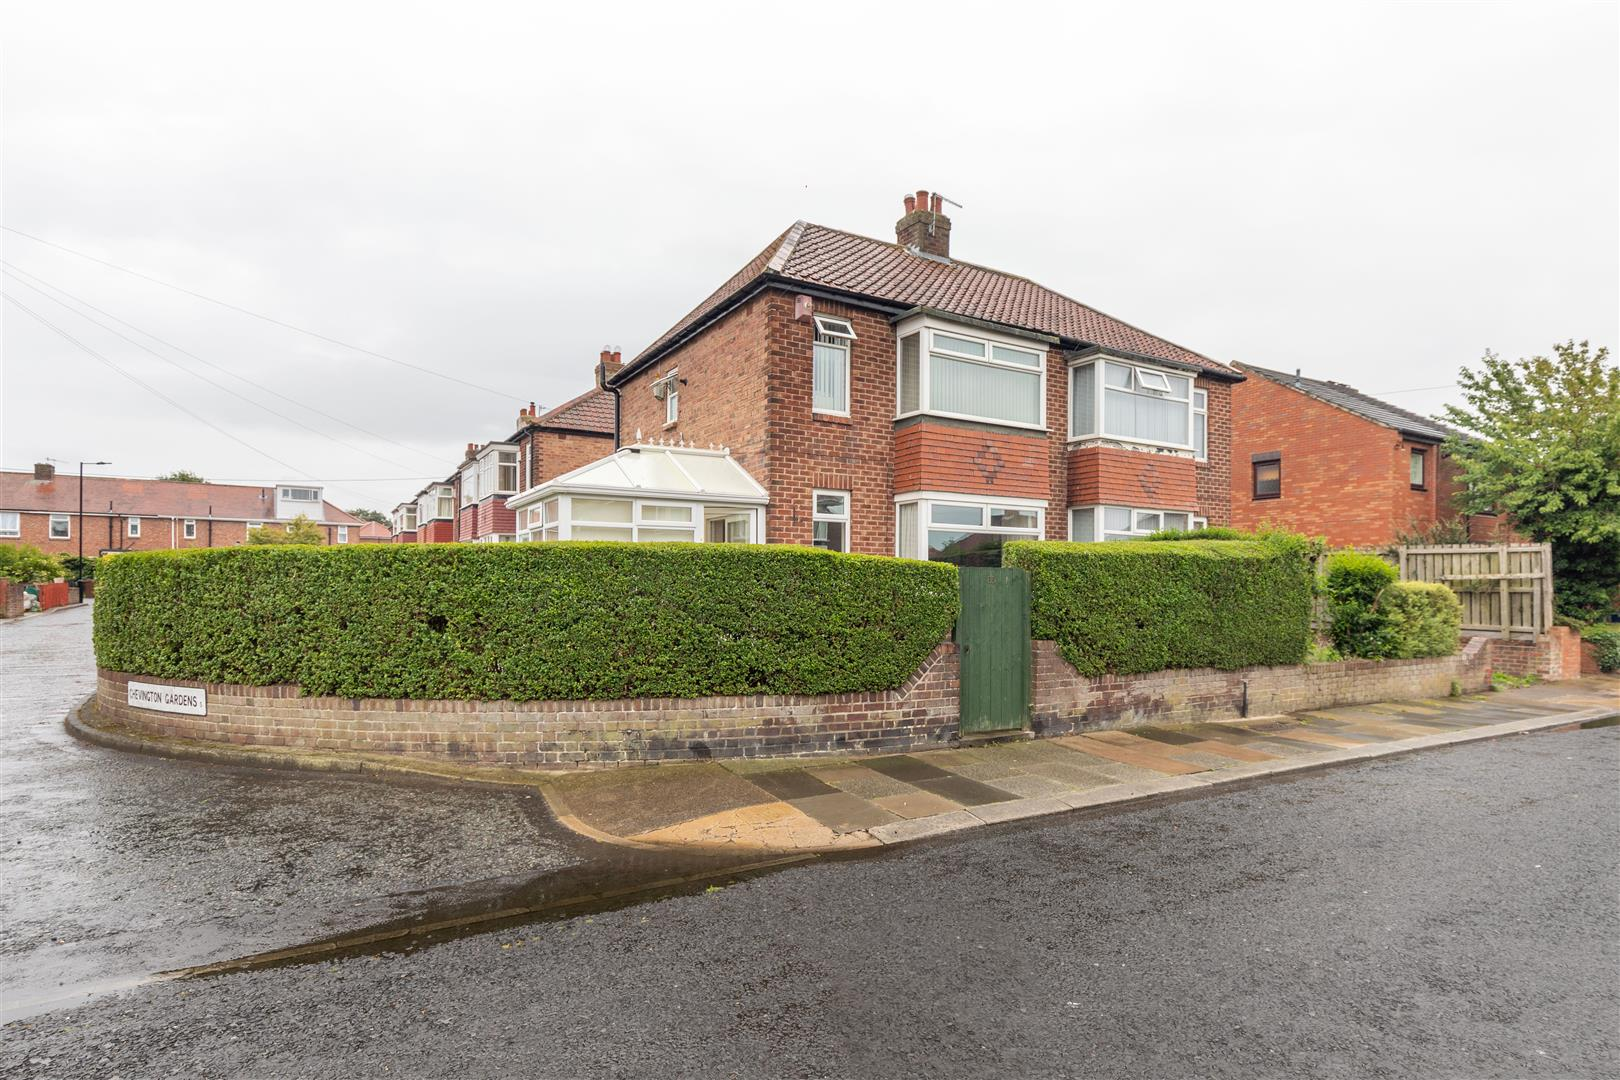 3 bed semi-detached house for sale in Newcastle Upon Tyne, NE5 3JS - Property Image 1